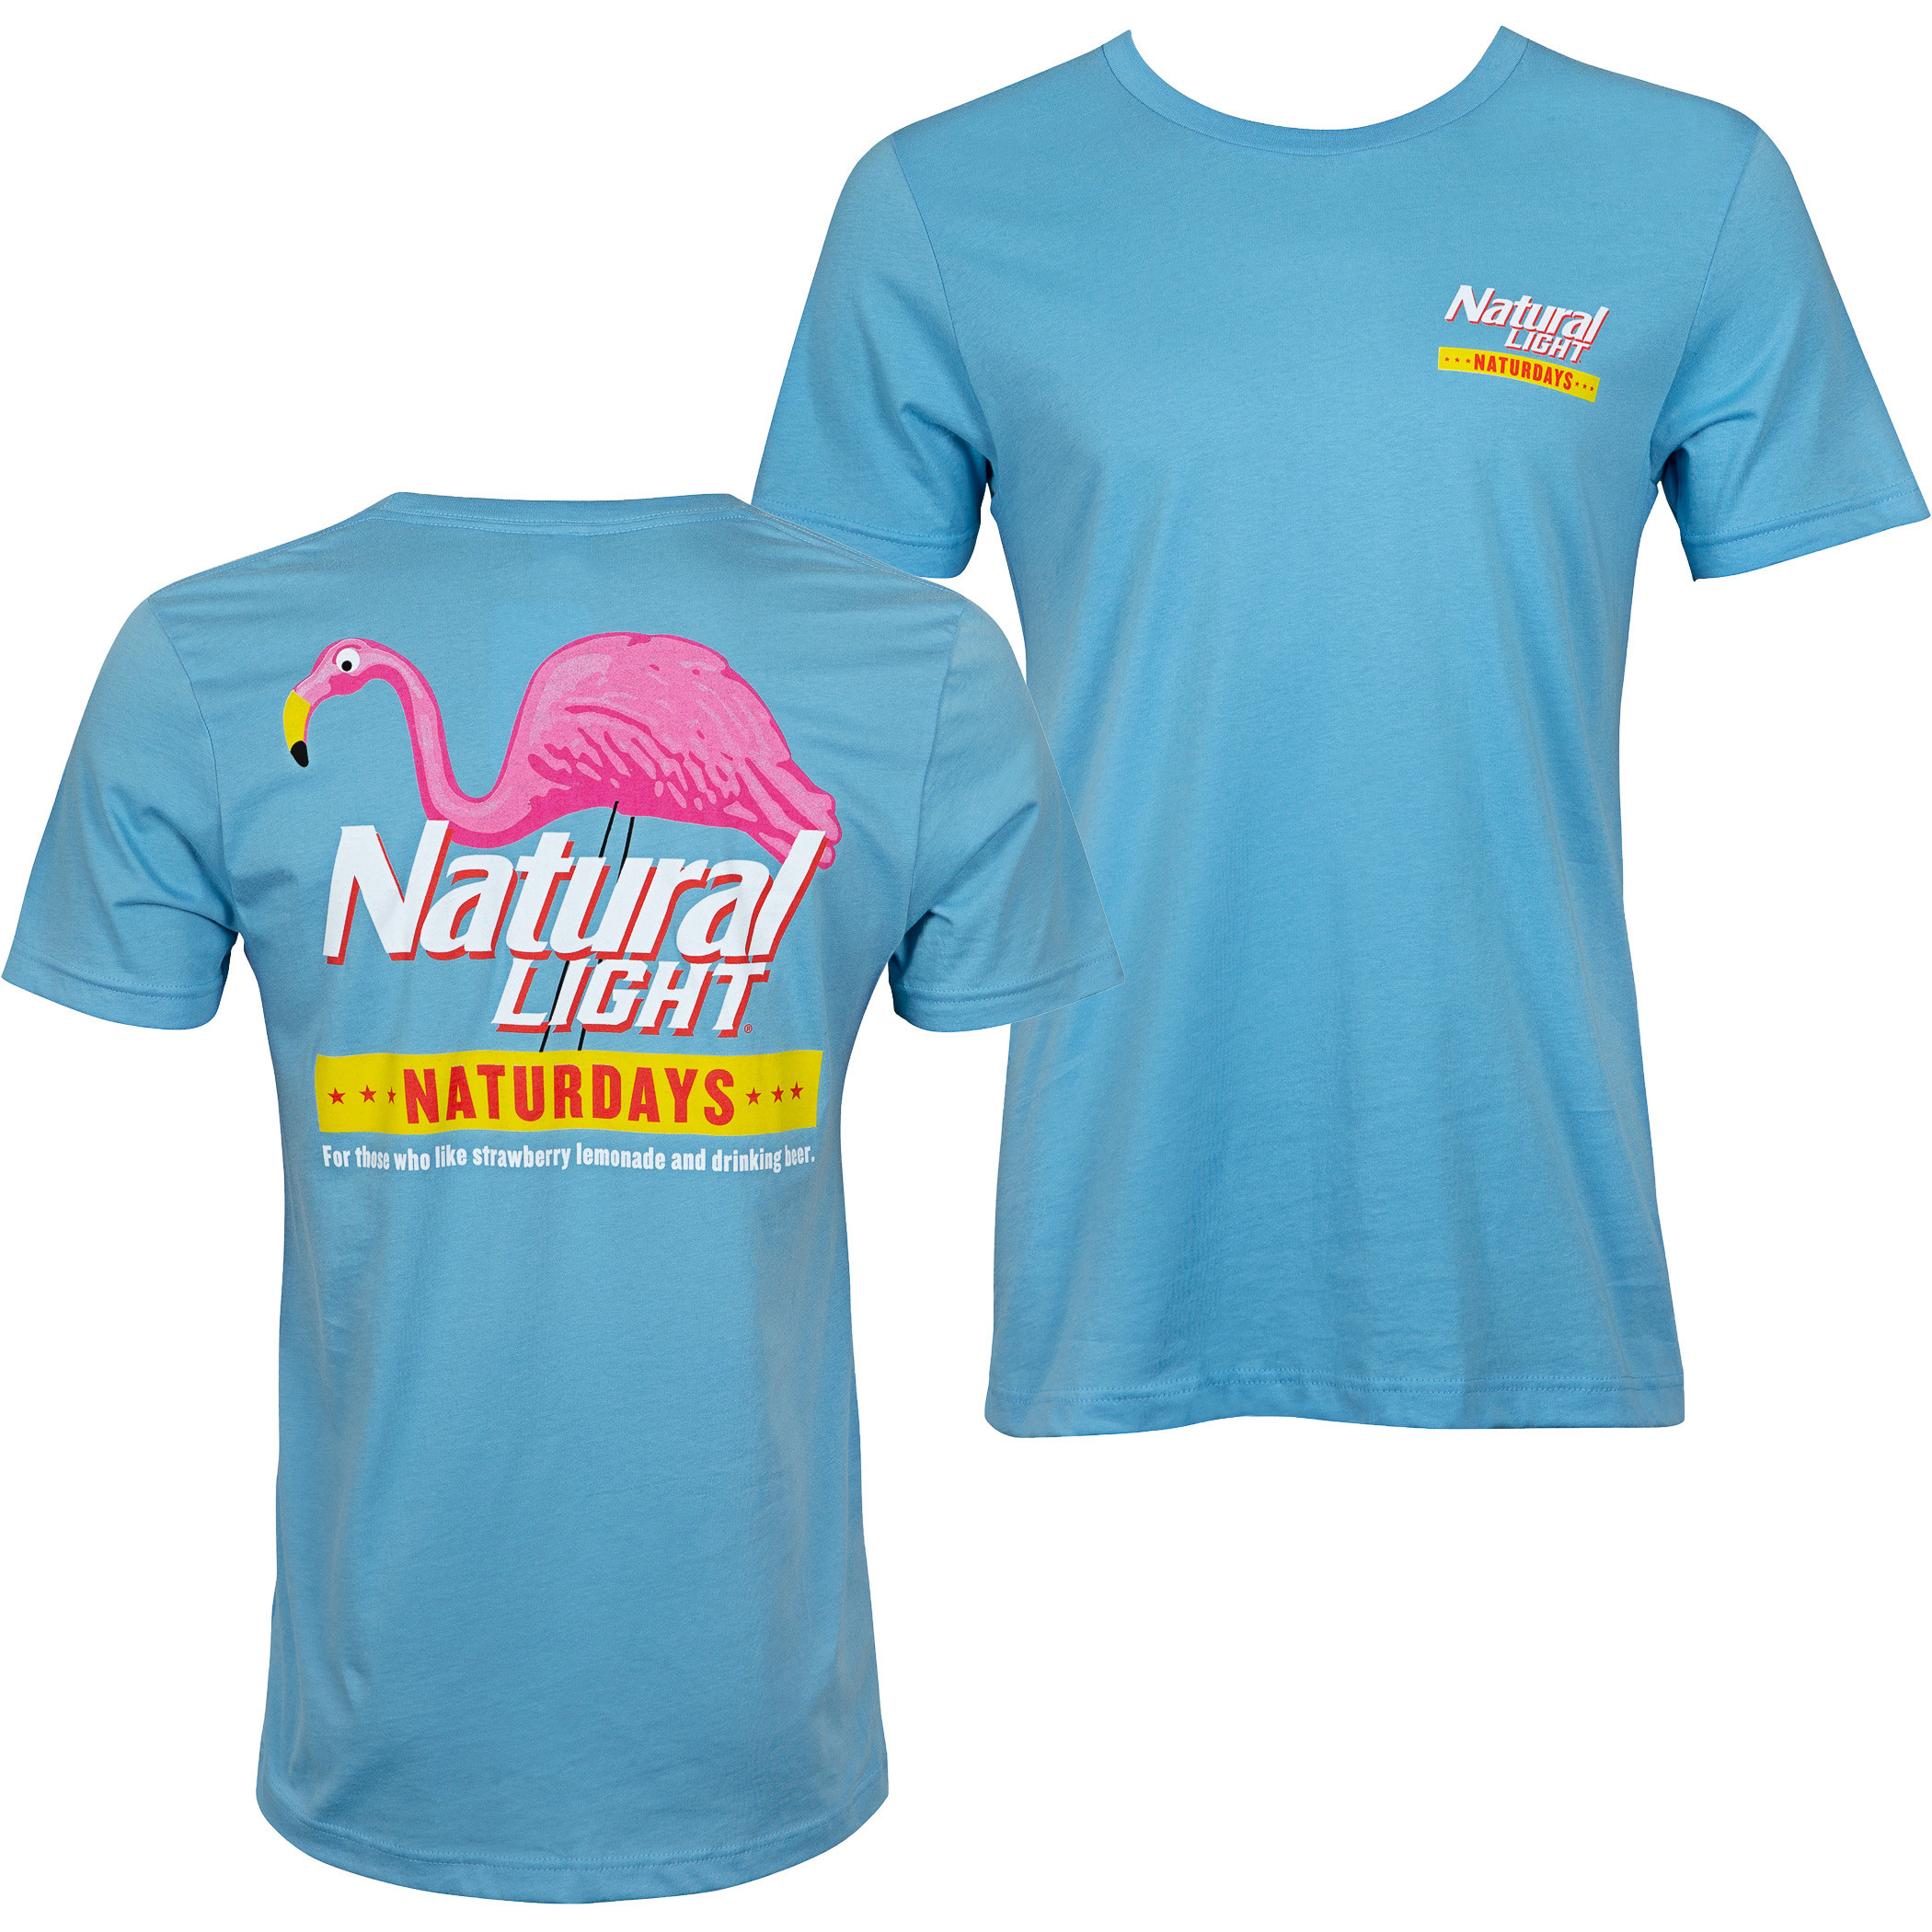 Natty Naturdays Blue Natural Light Men's Tee Shirt